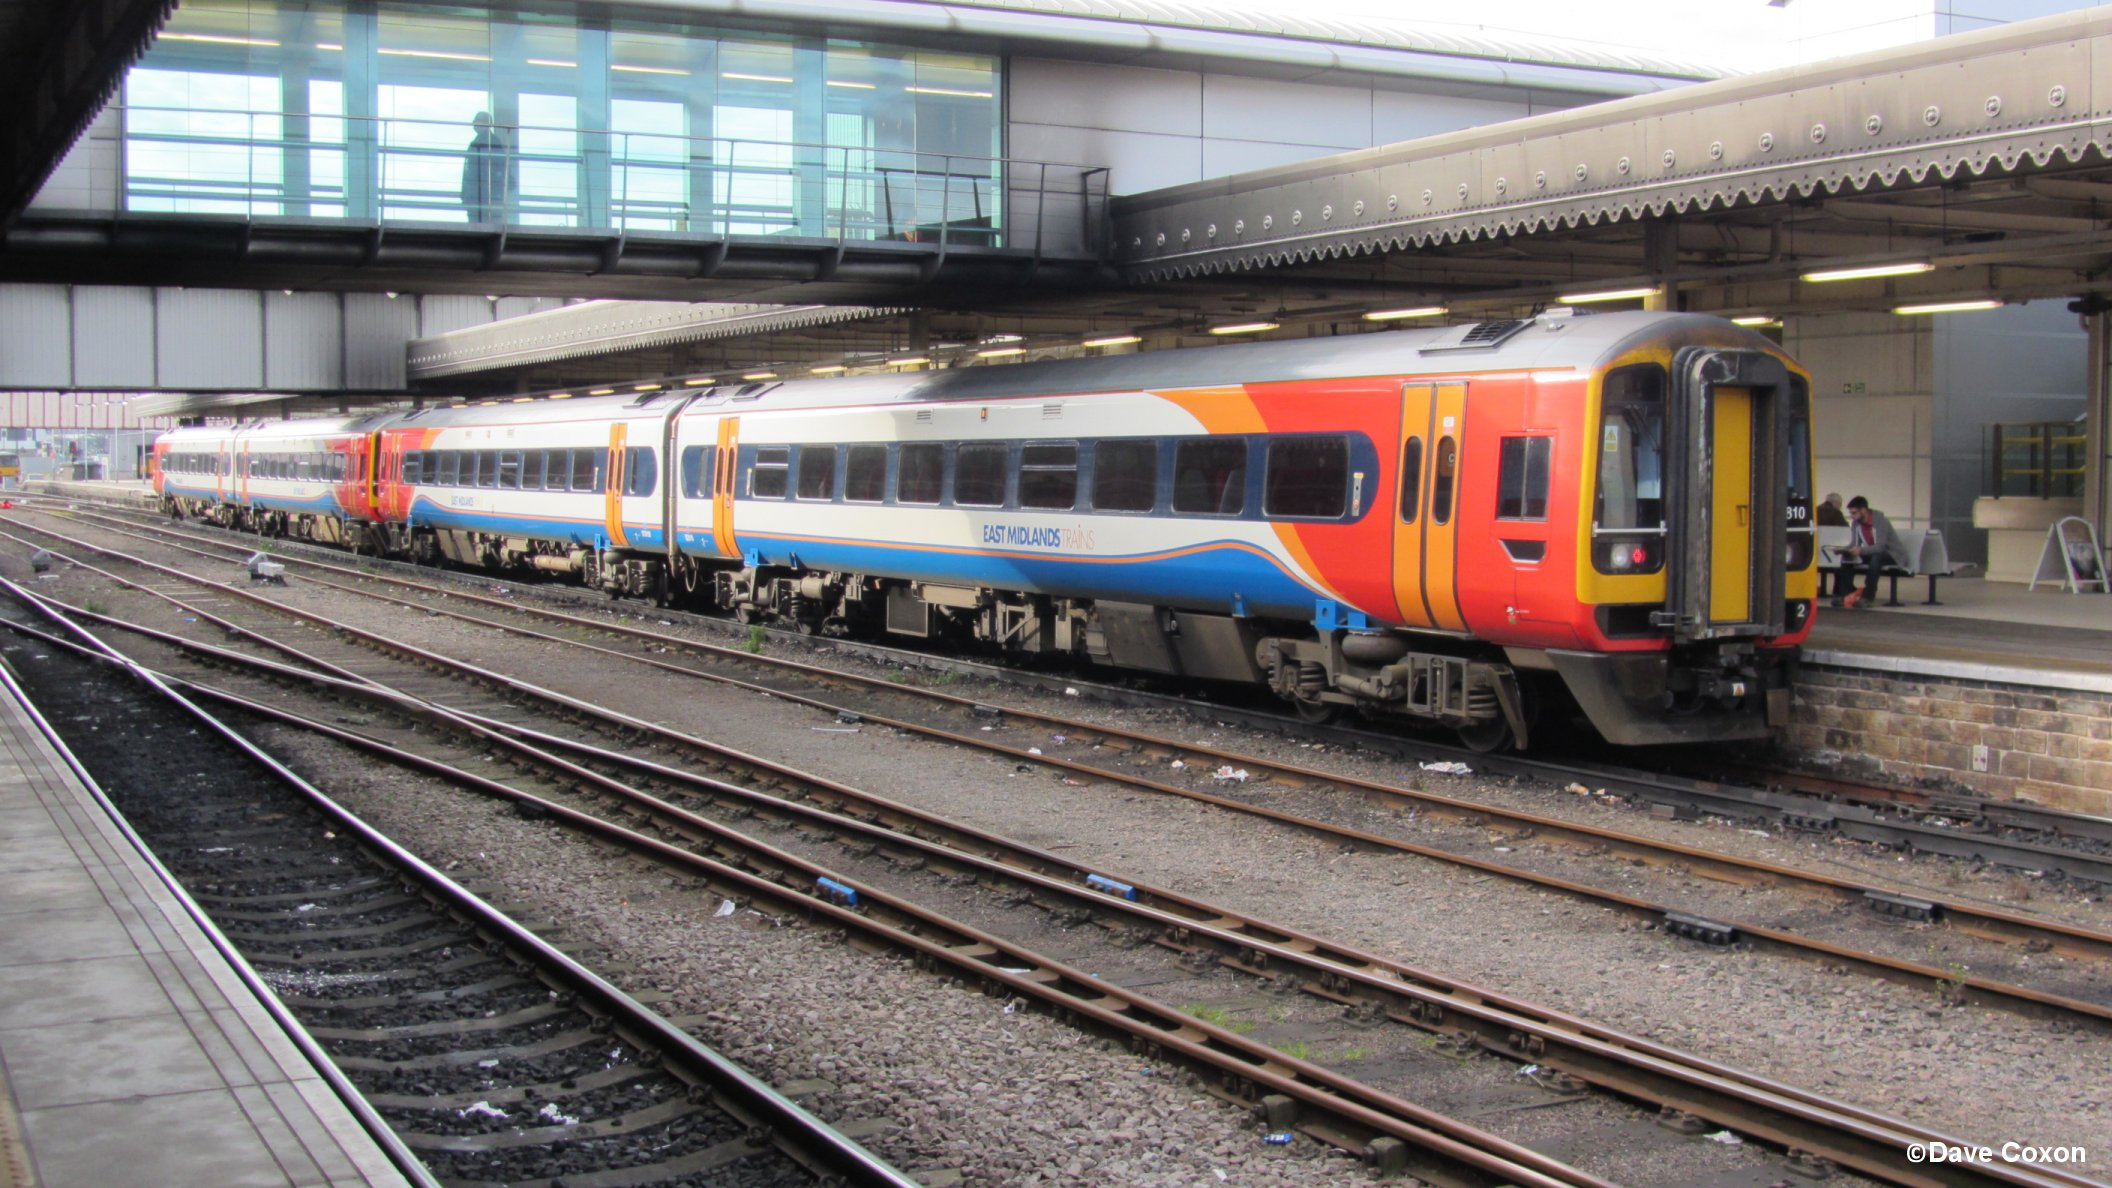 East midlands trains fotopic